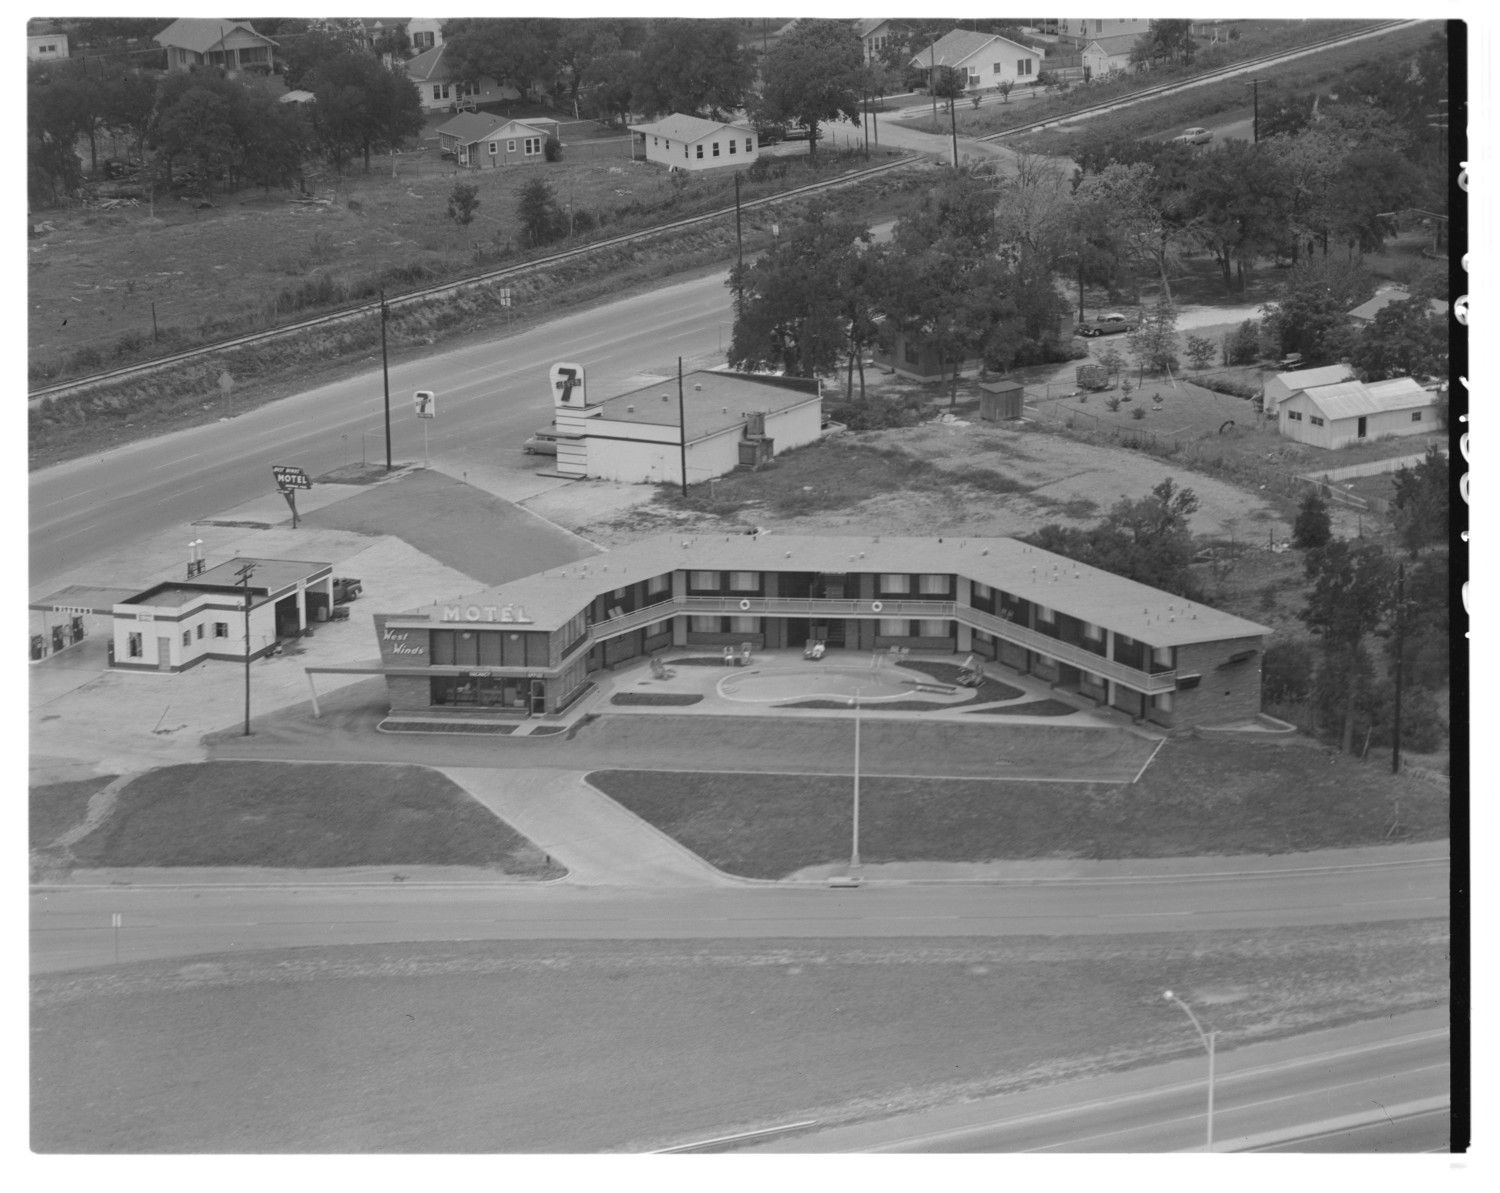 1956 Austin Texas Showing Westwind Motel Along Ih35 Frontage Road At Airport Blvd Aerial View Aerial Photograph Aerial